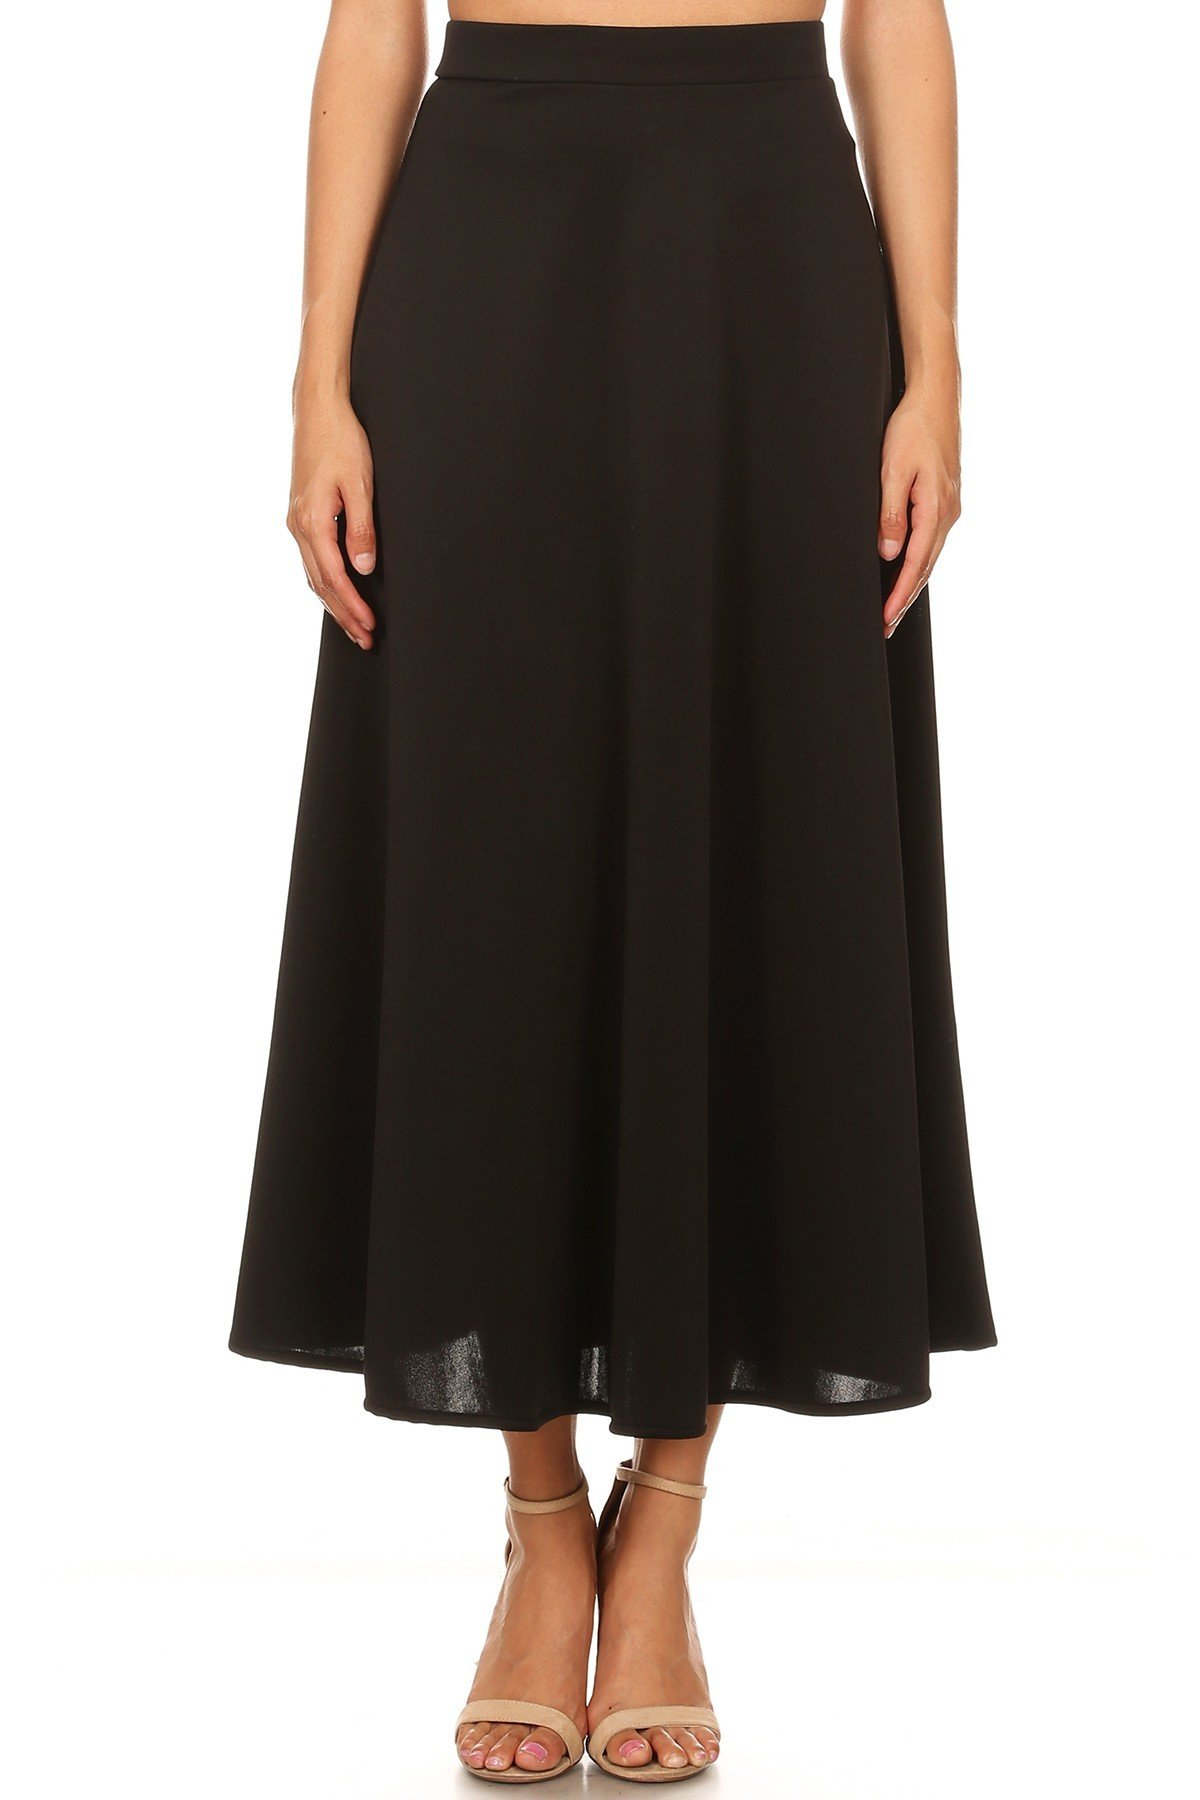 Swing & Sway Skirt Black Front View